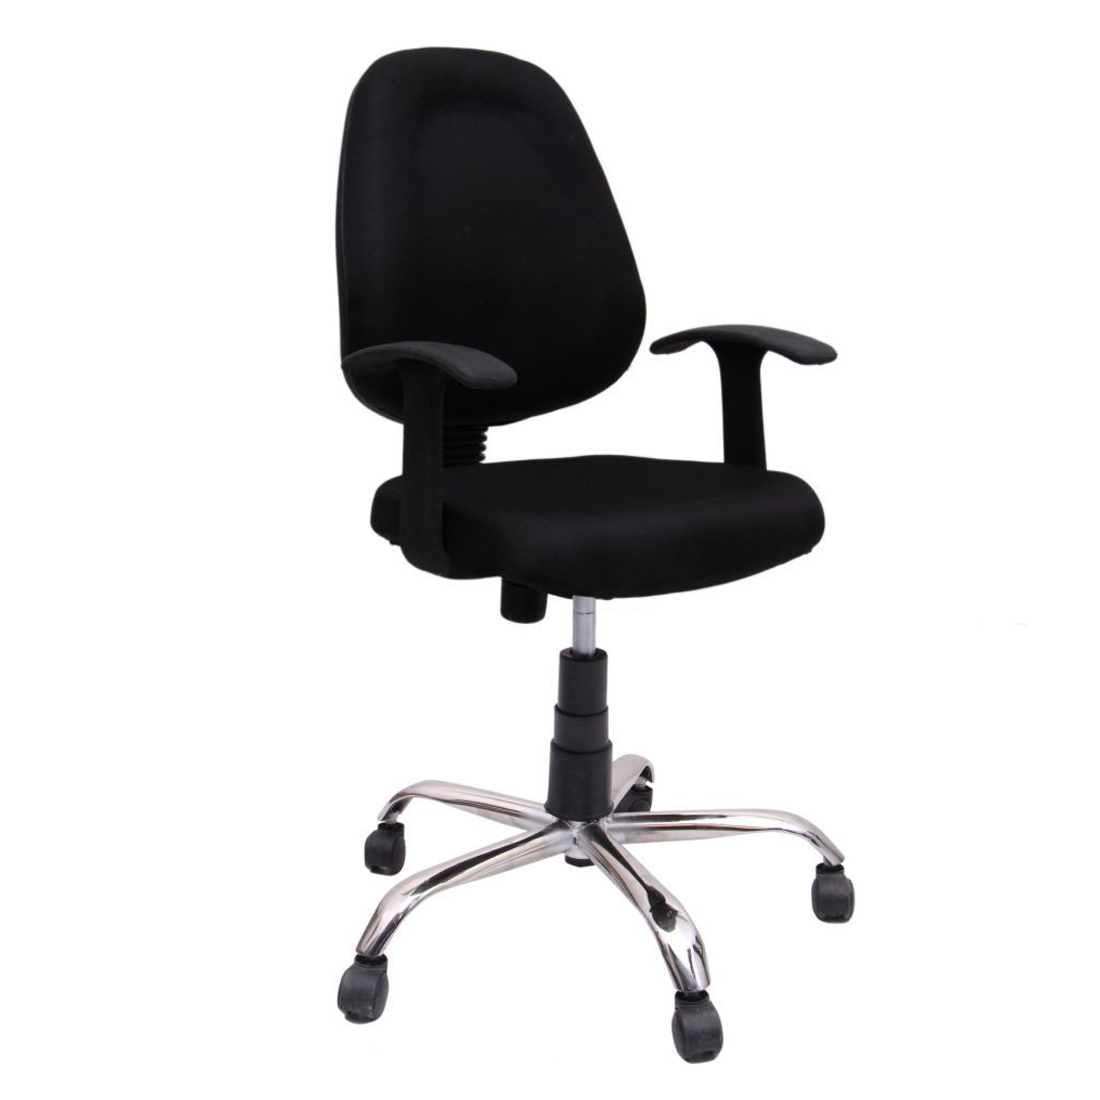 47fcb20999c Bharat Lifestyle Flair Medium Back Office Chair Online Price in India